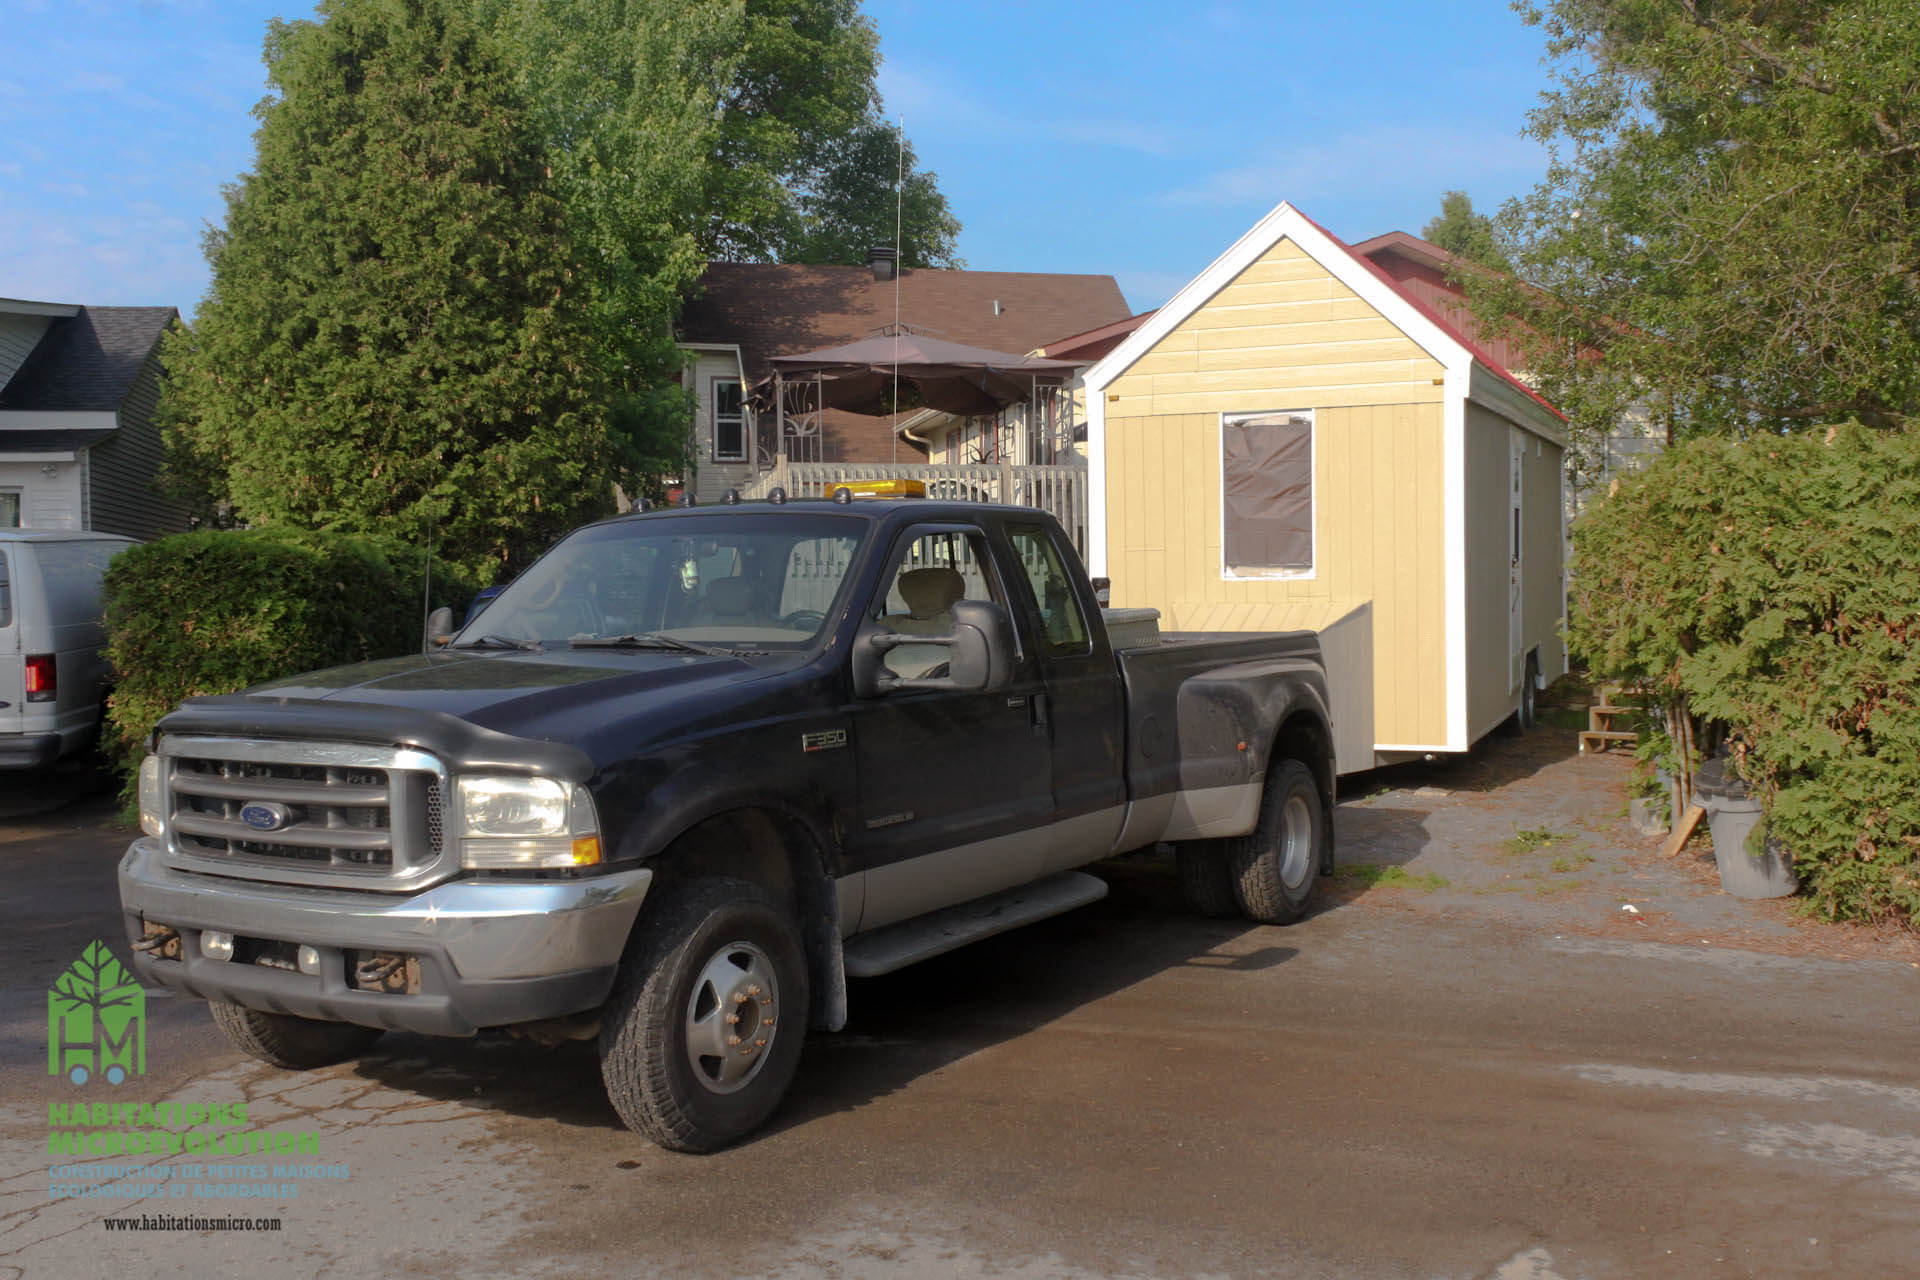 Déplacement tiny house